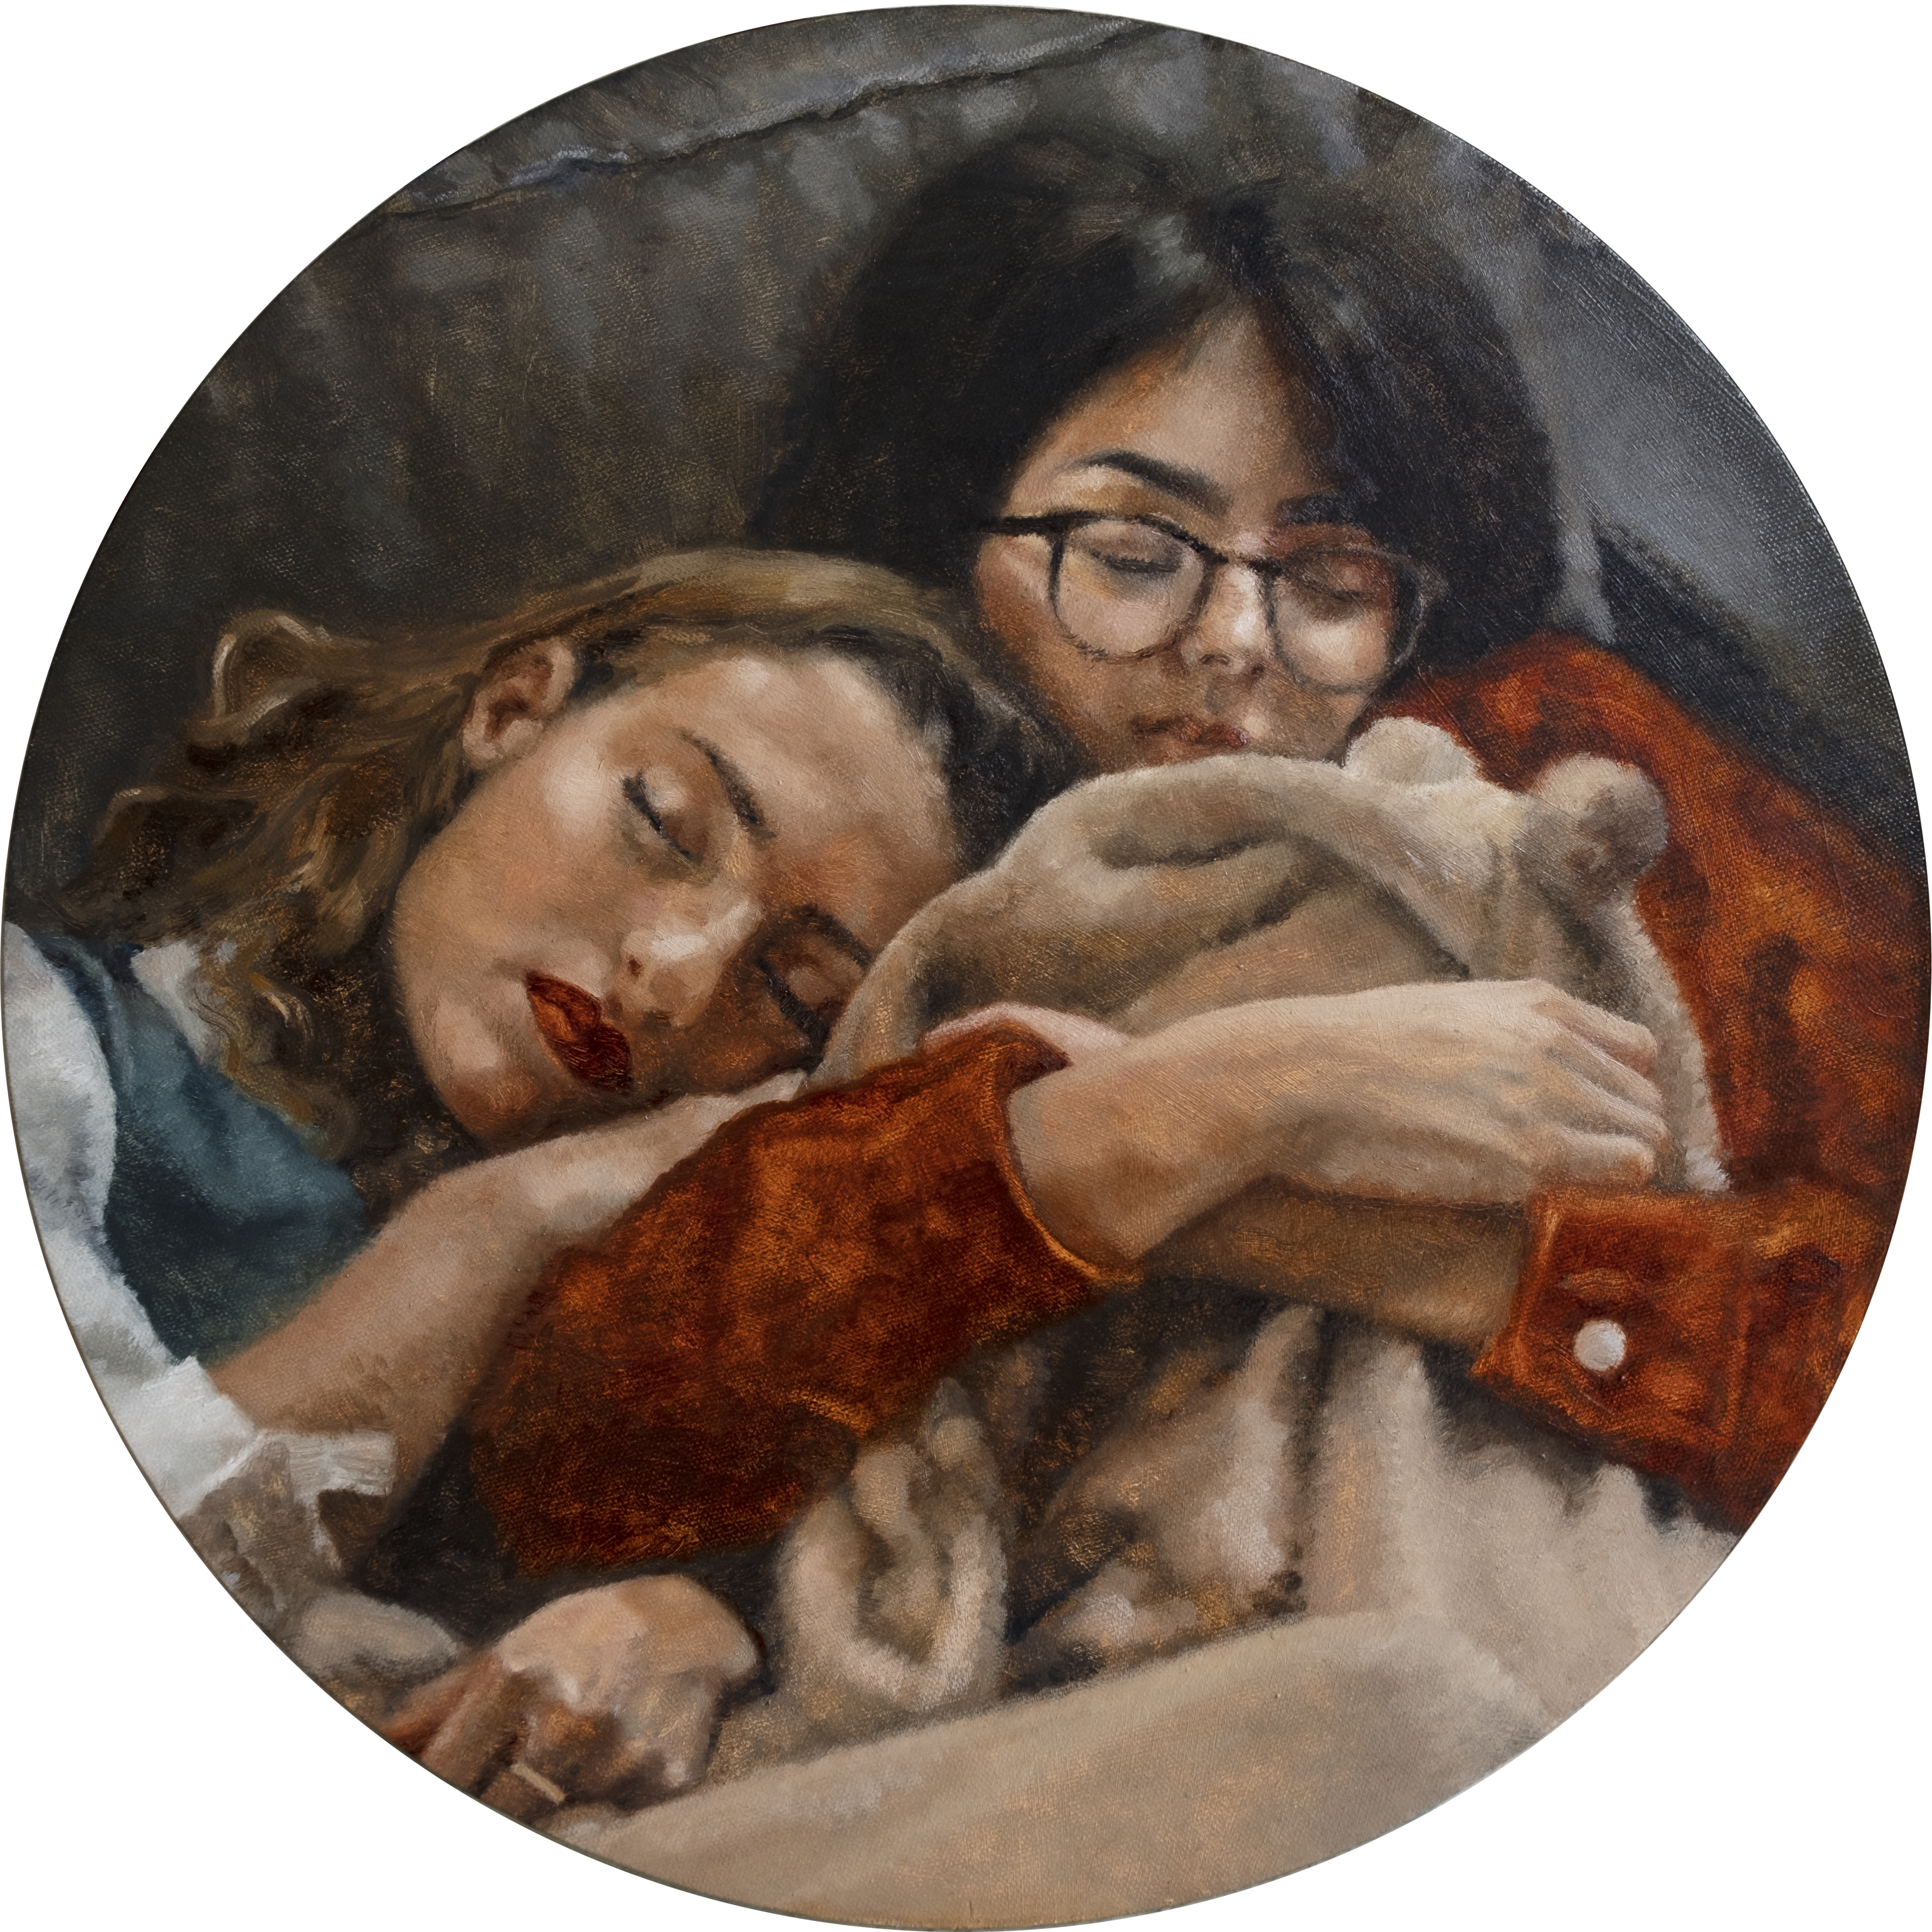 Anna Calleja, Lucia and Nina Sleeping, oil on canvas, 40x40cm, 2020